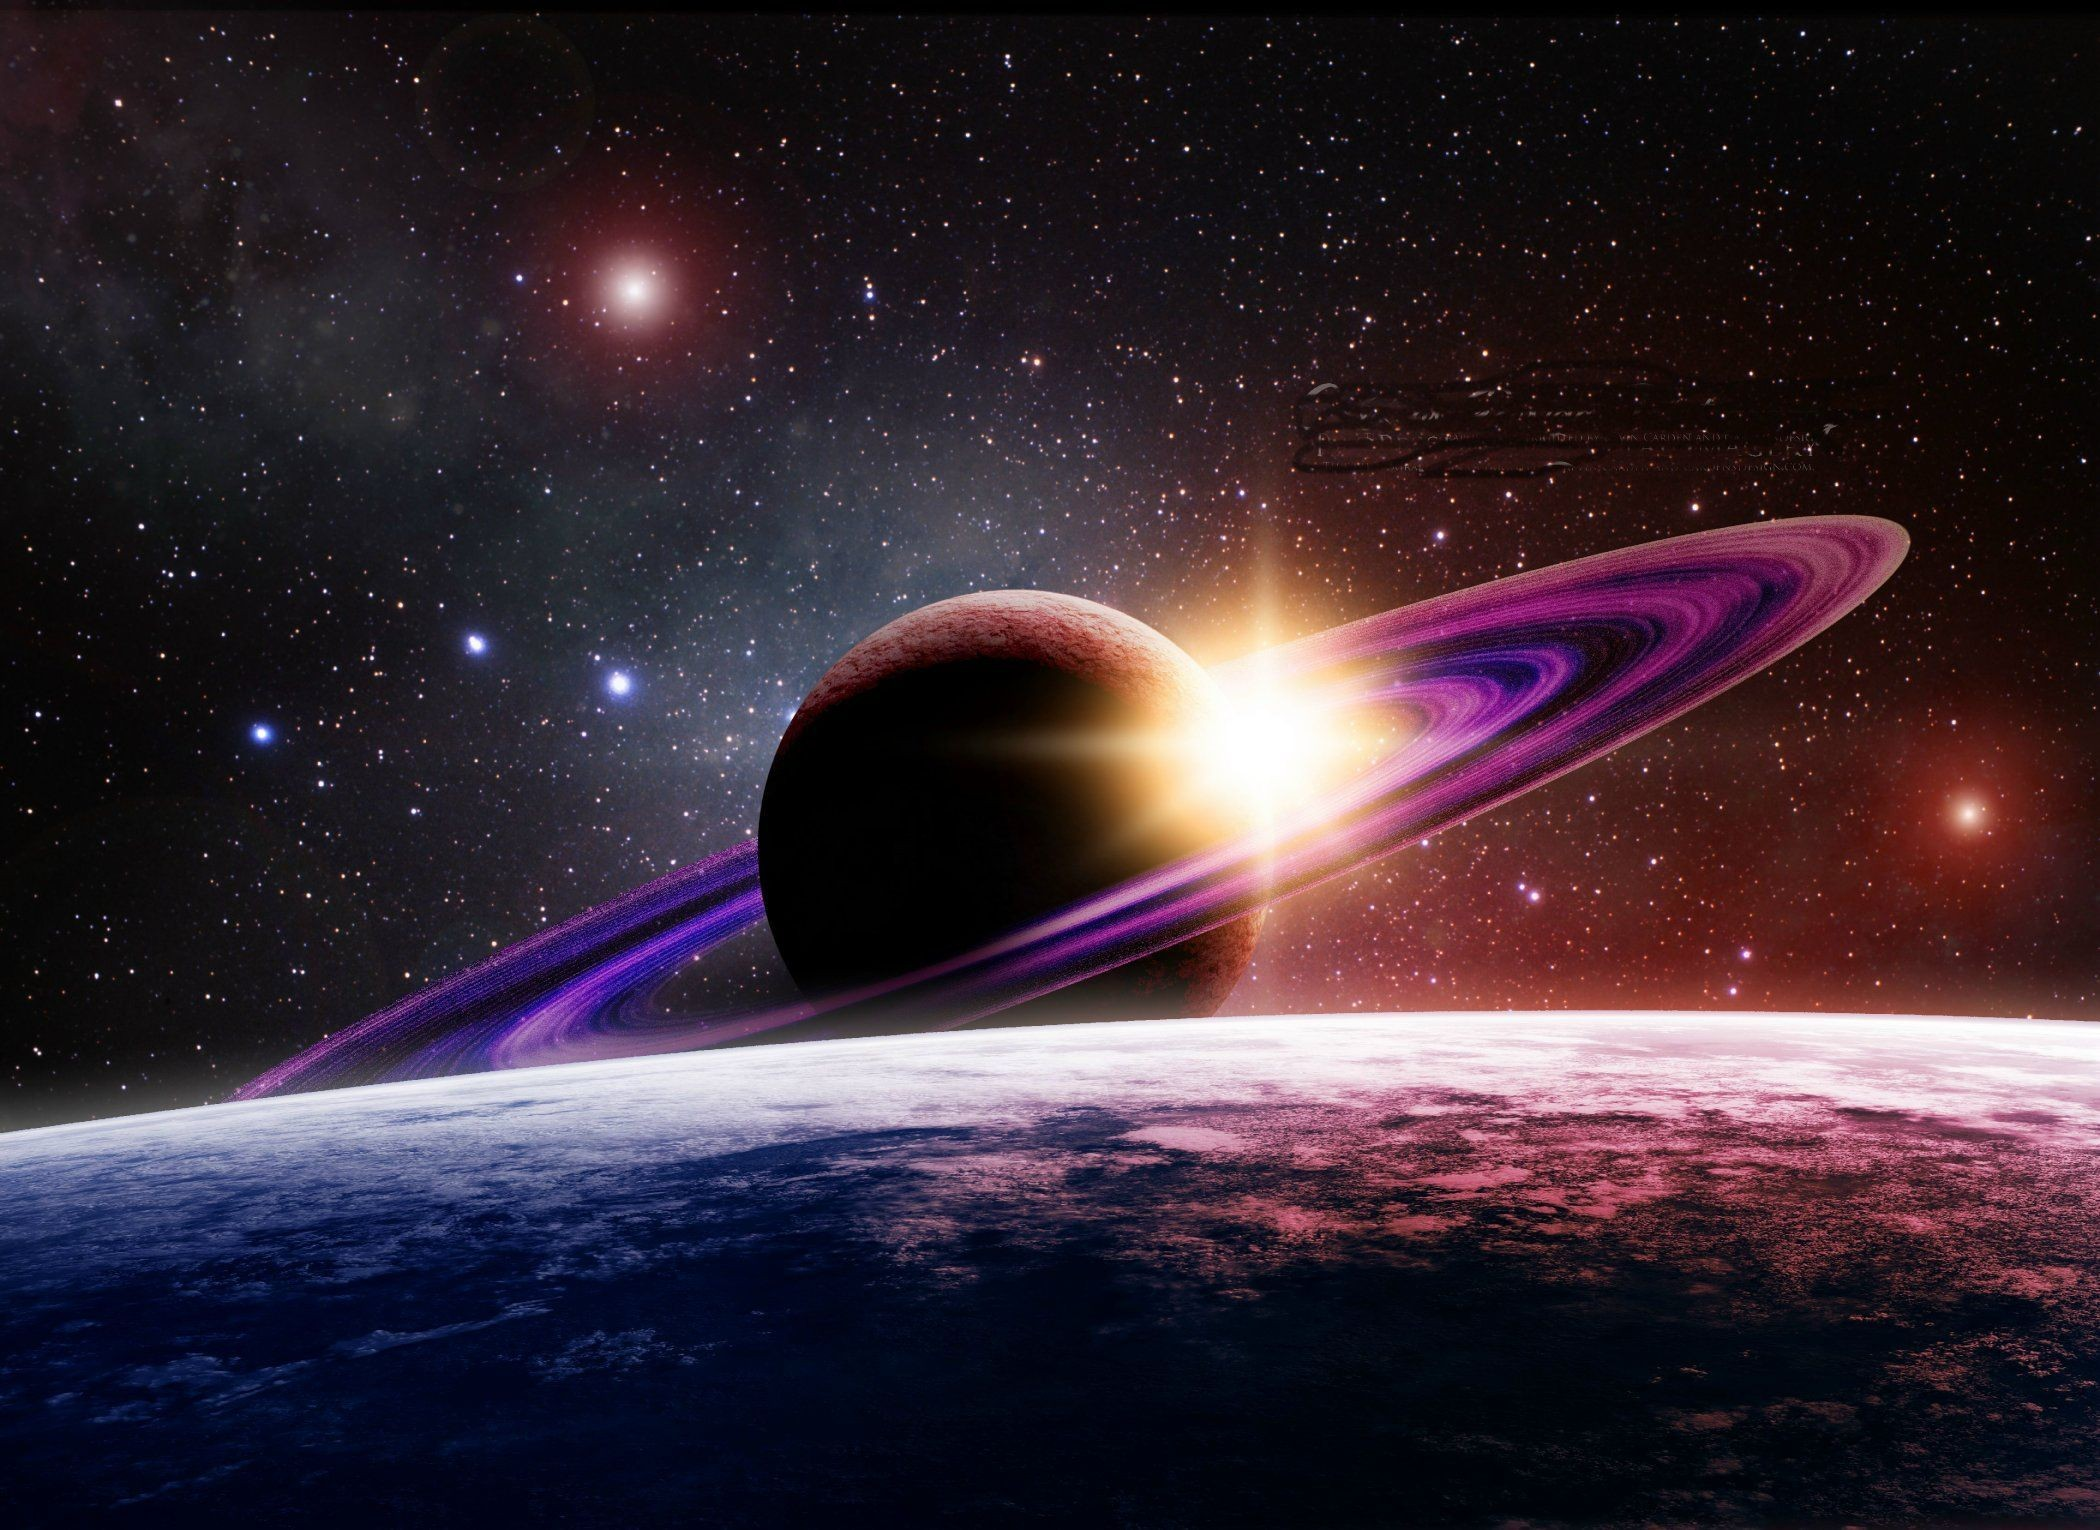 Saturn wallpaper  Download free beautiful HD backgrounds for desktop and mobile devices in any